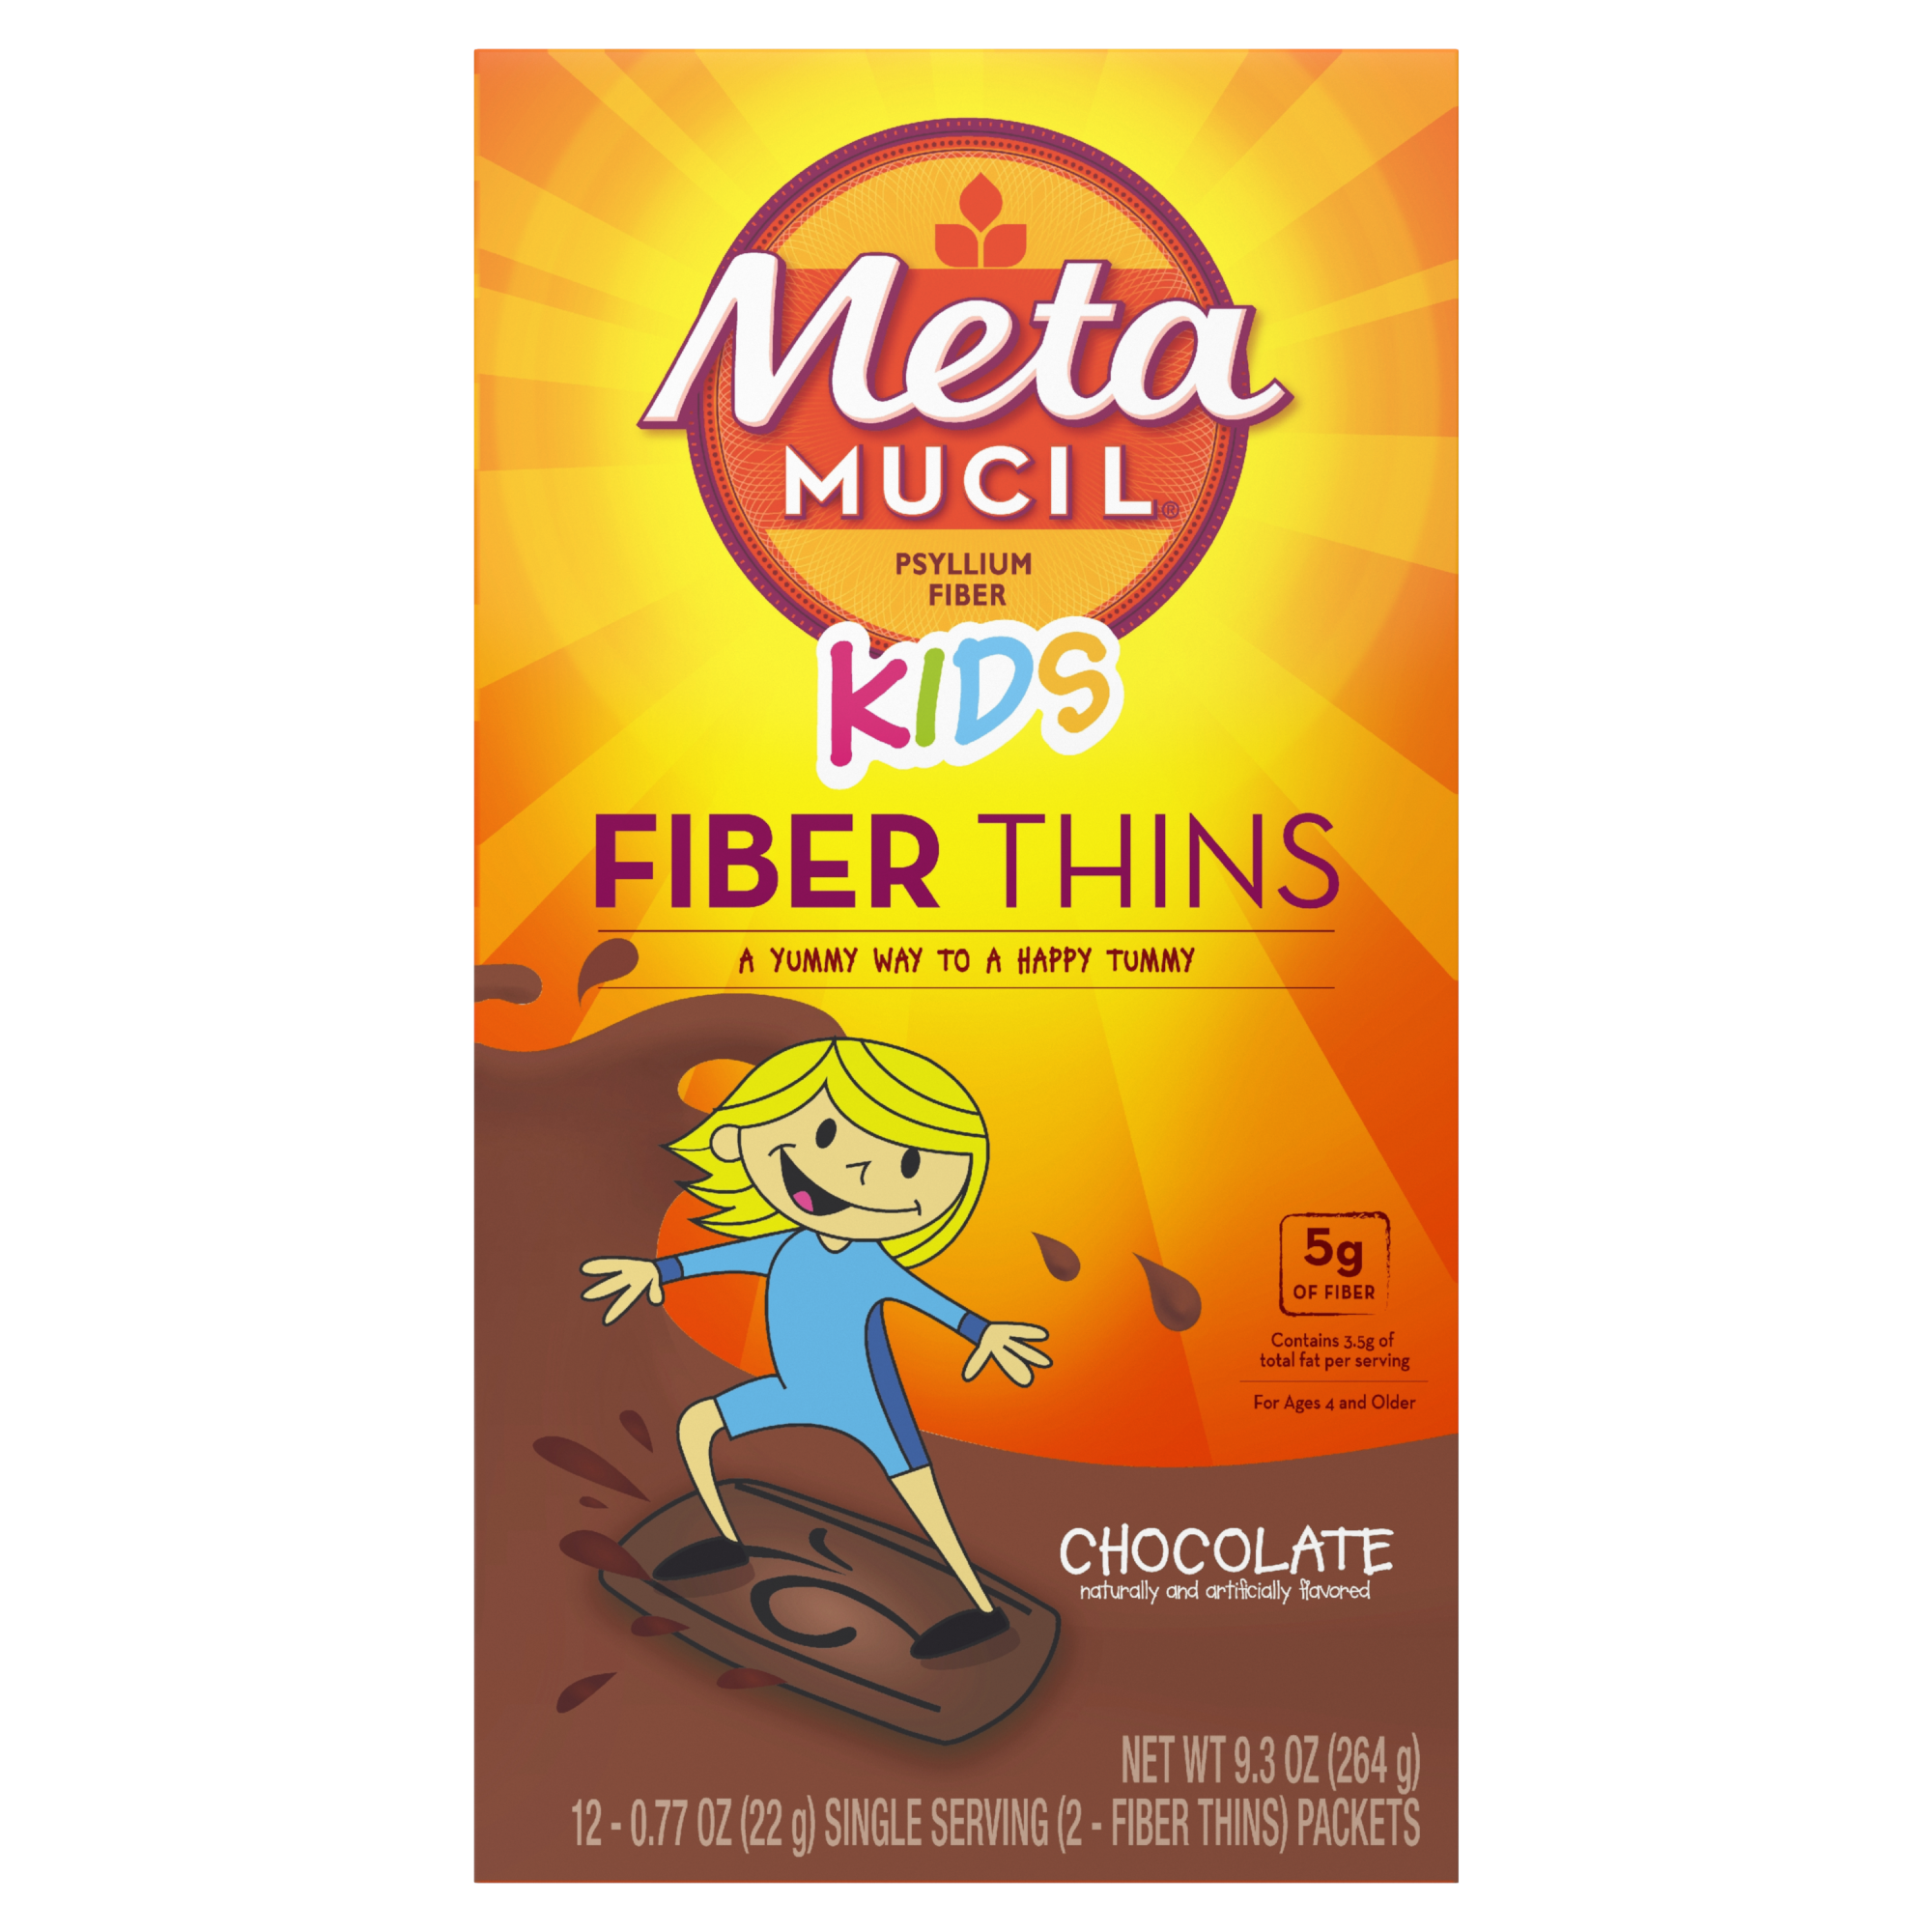 METAMUCIL KIDS FIBER THINS CHOCOLATE